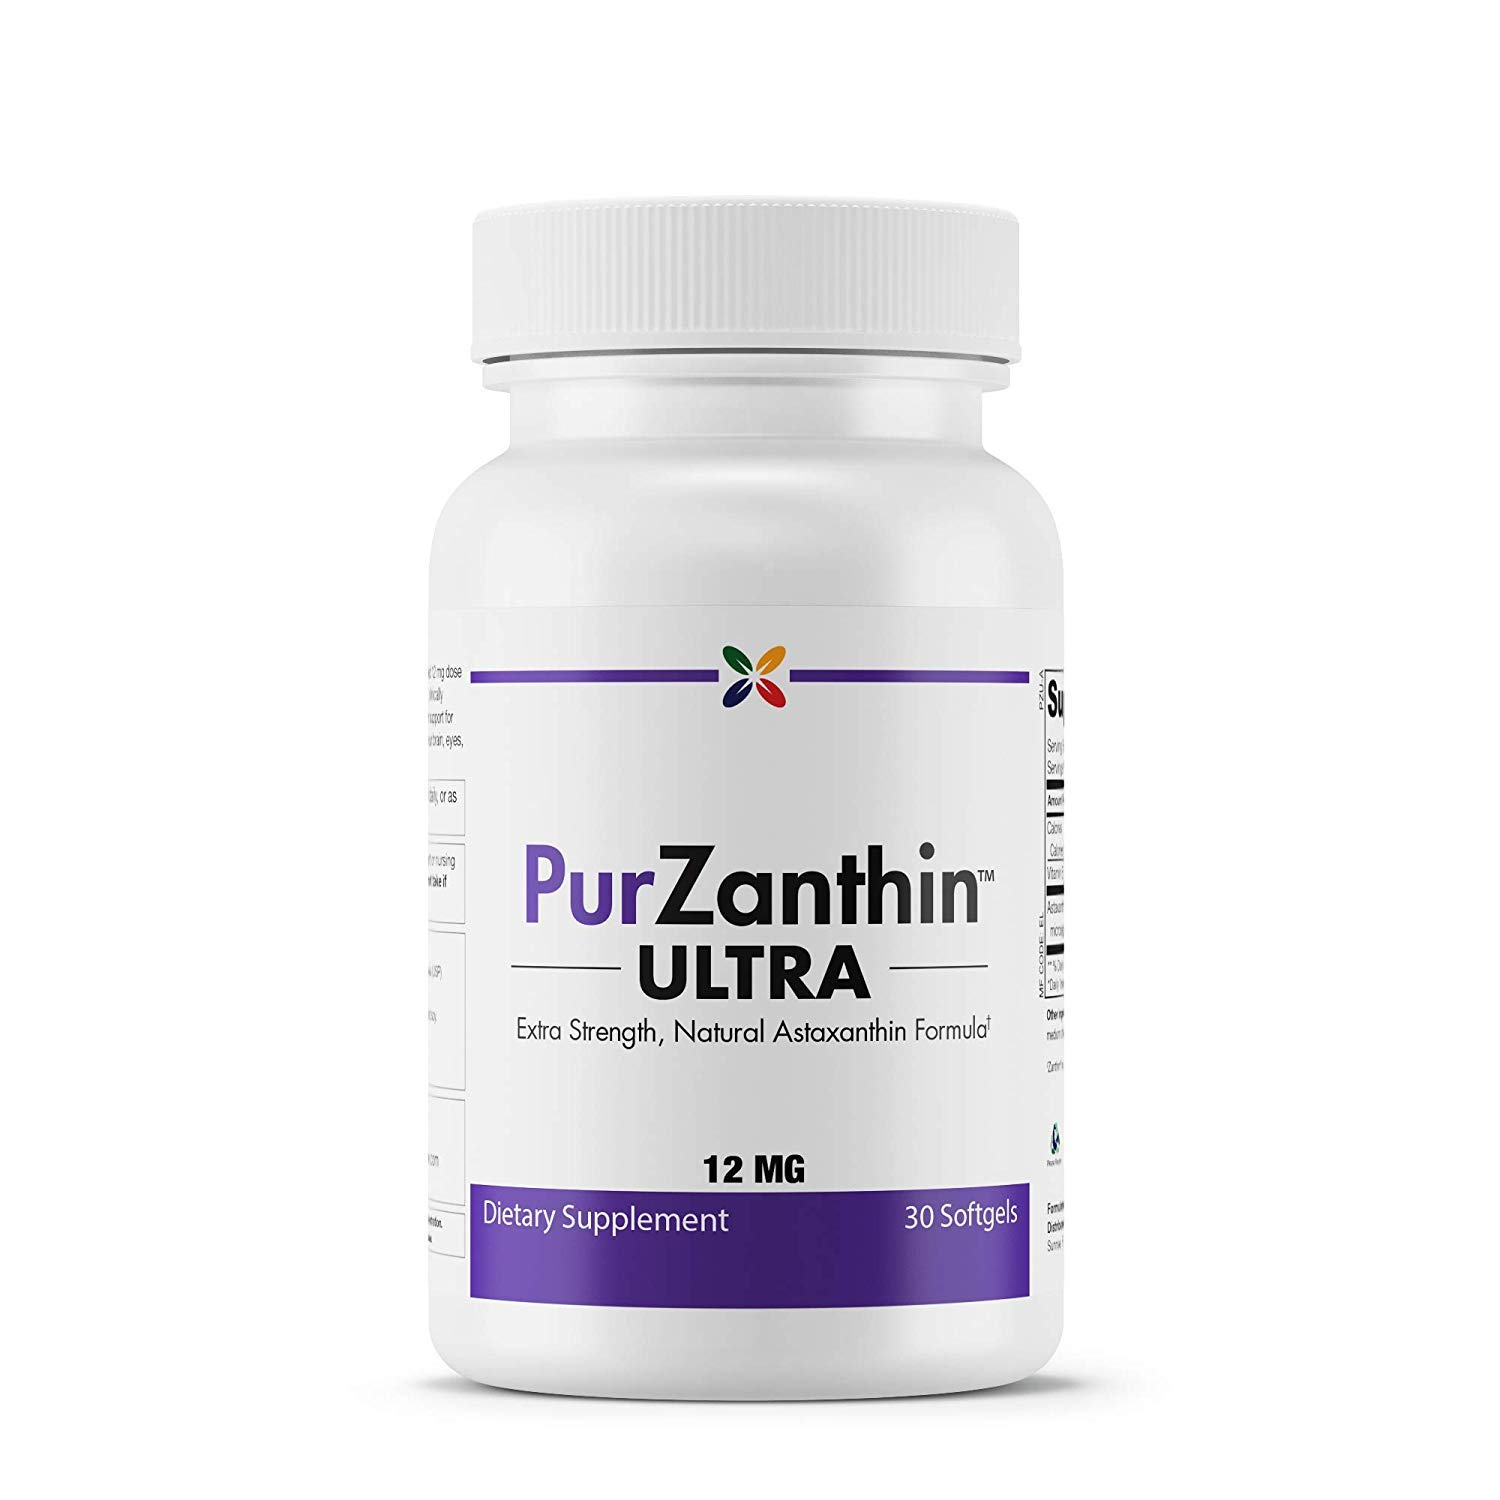 Stop Aging Now - PurZanthinTM ULTRA Natural Astaxanthin 12 MG (PZUWPT) - Extra Strength, Natural Astaxanthin Formula - 30 Softgels